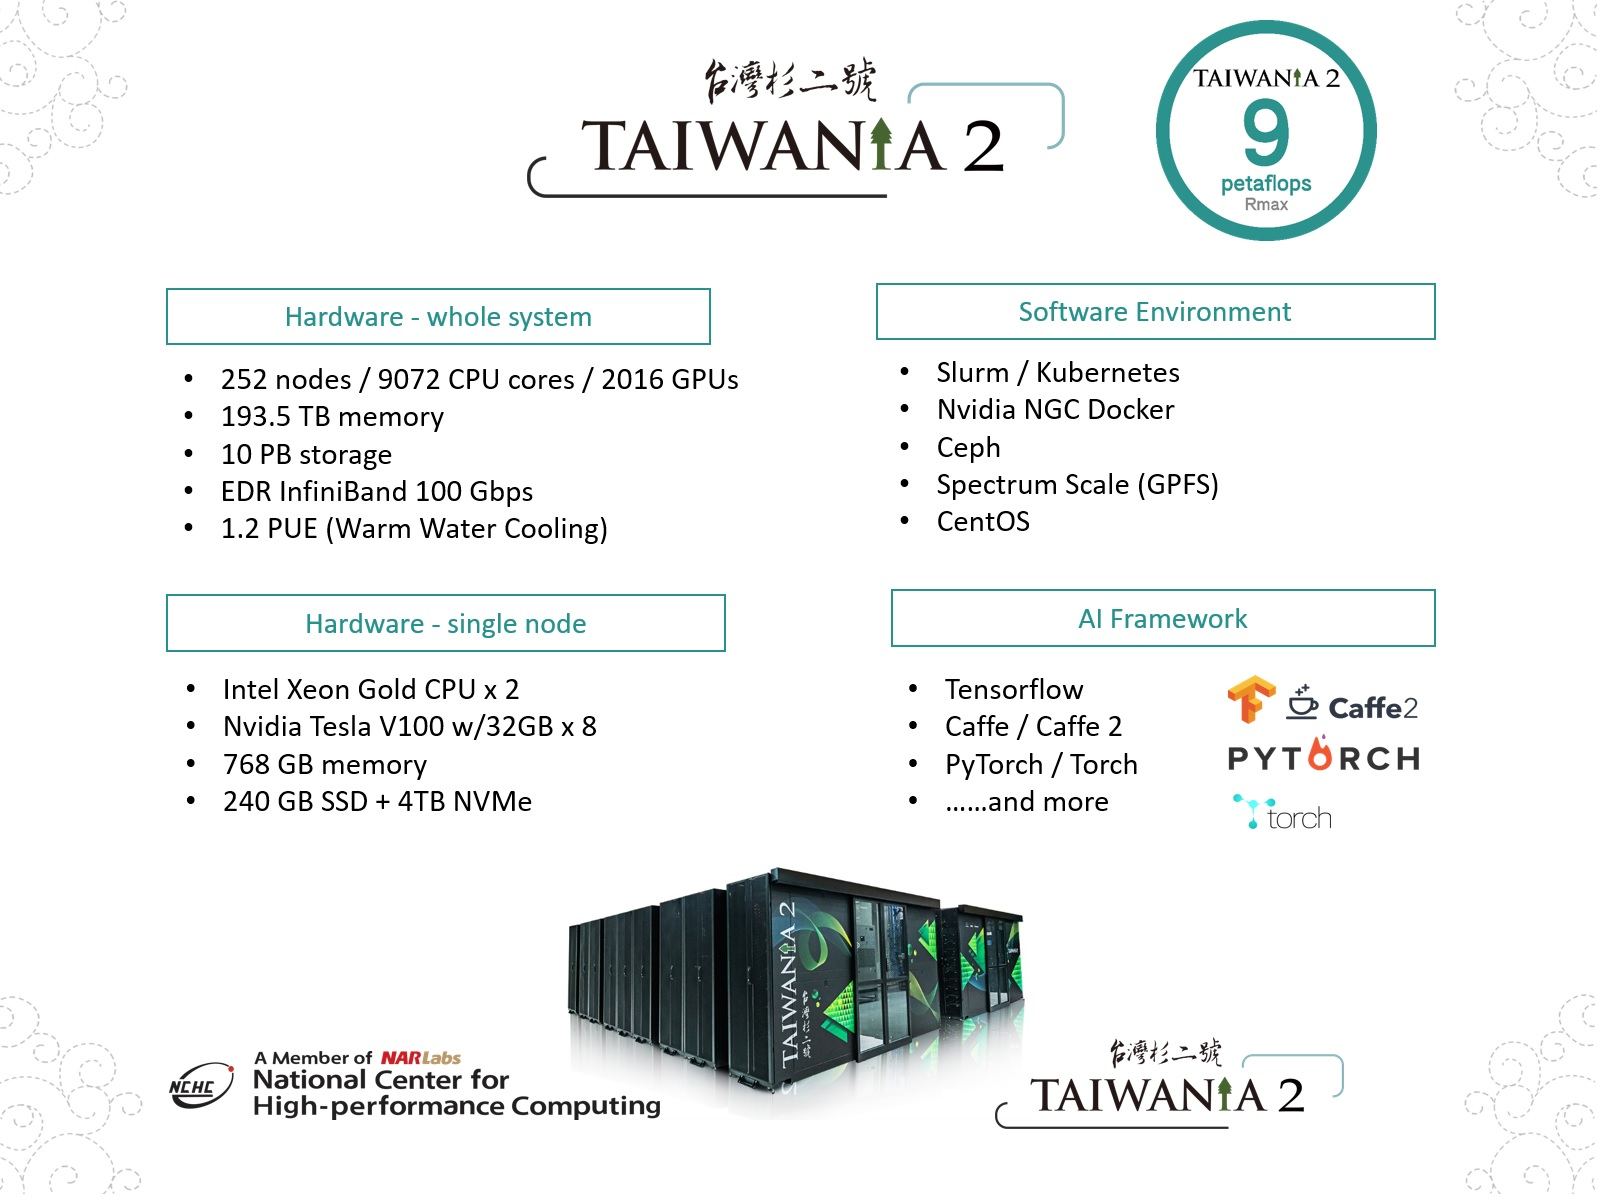 System and Framework of TAIWANIA 2, consultation service +886-3-5776085